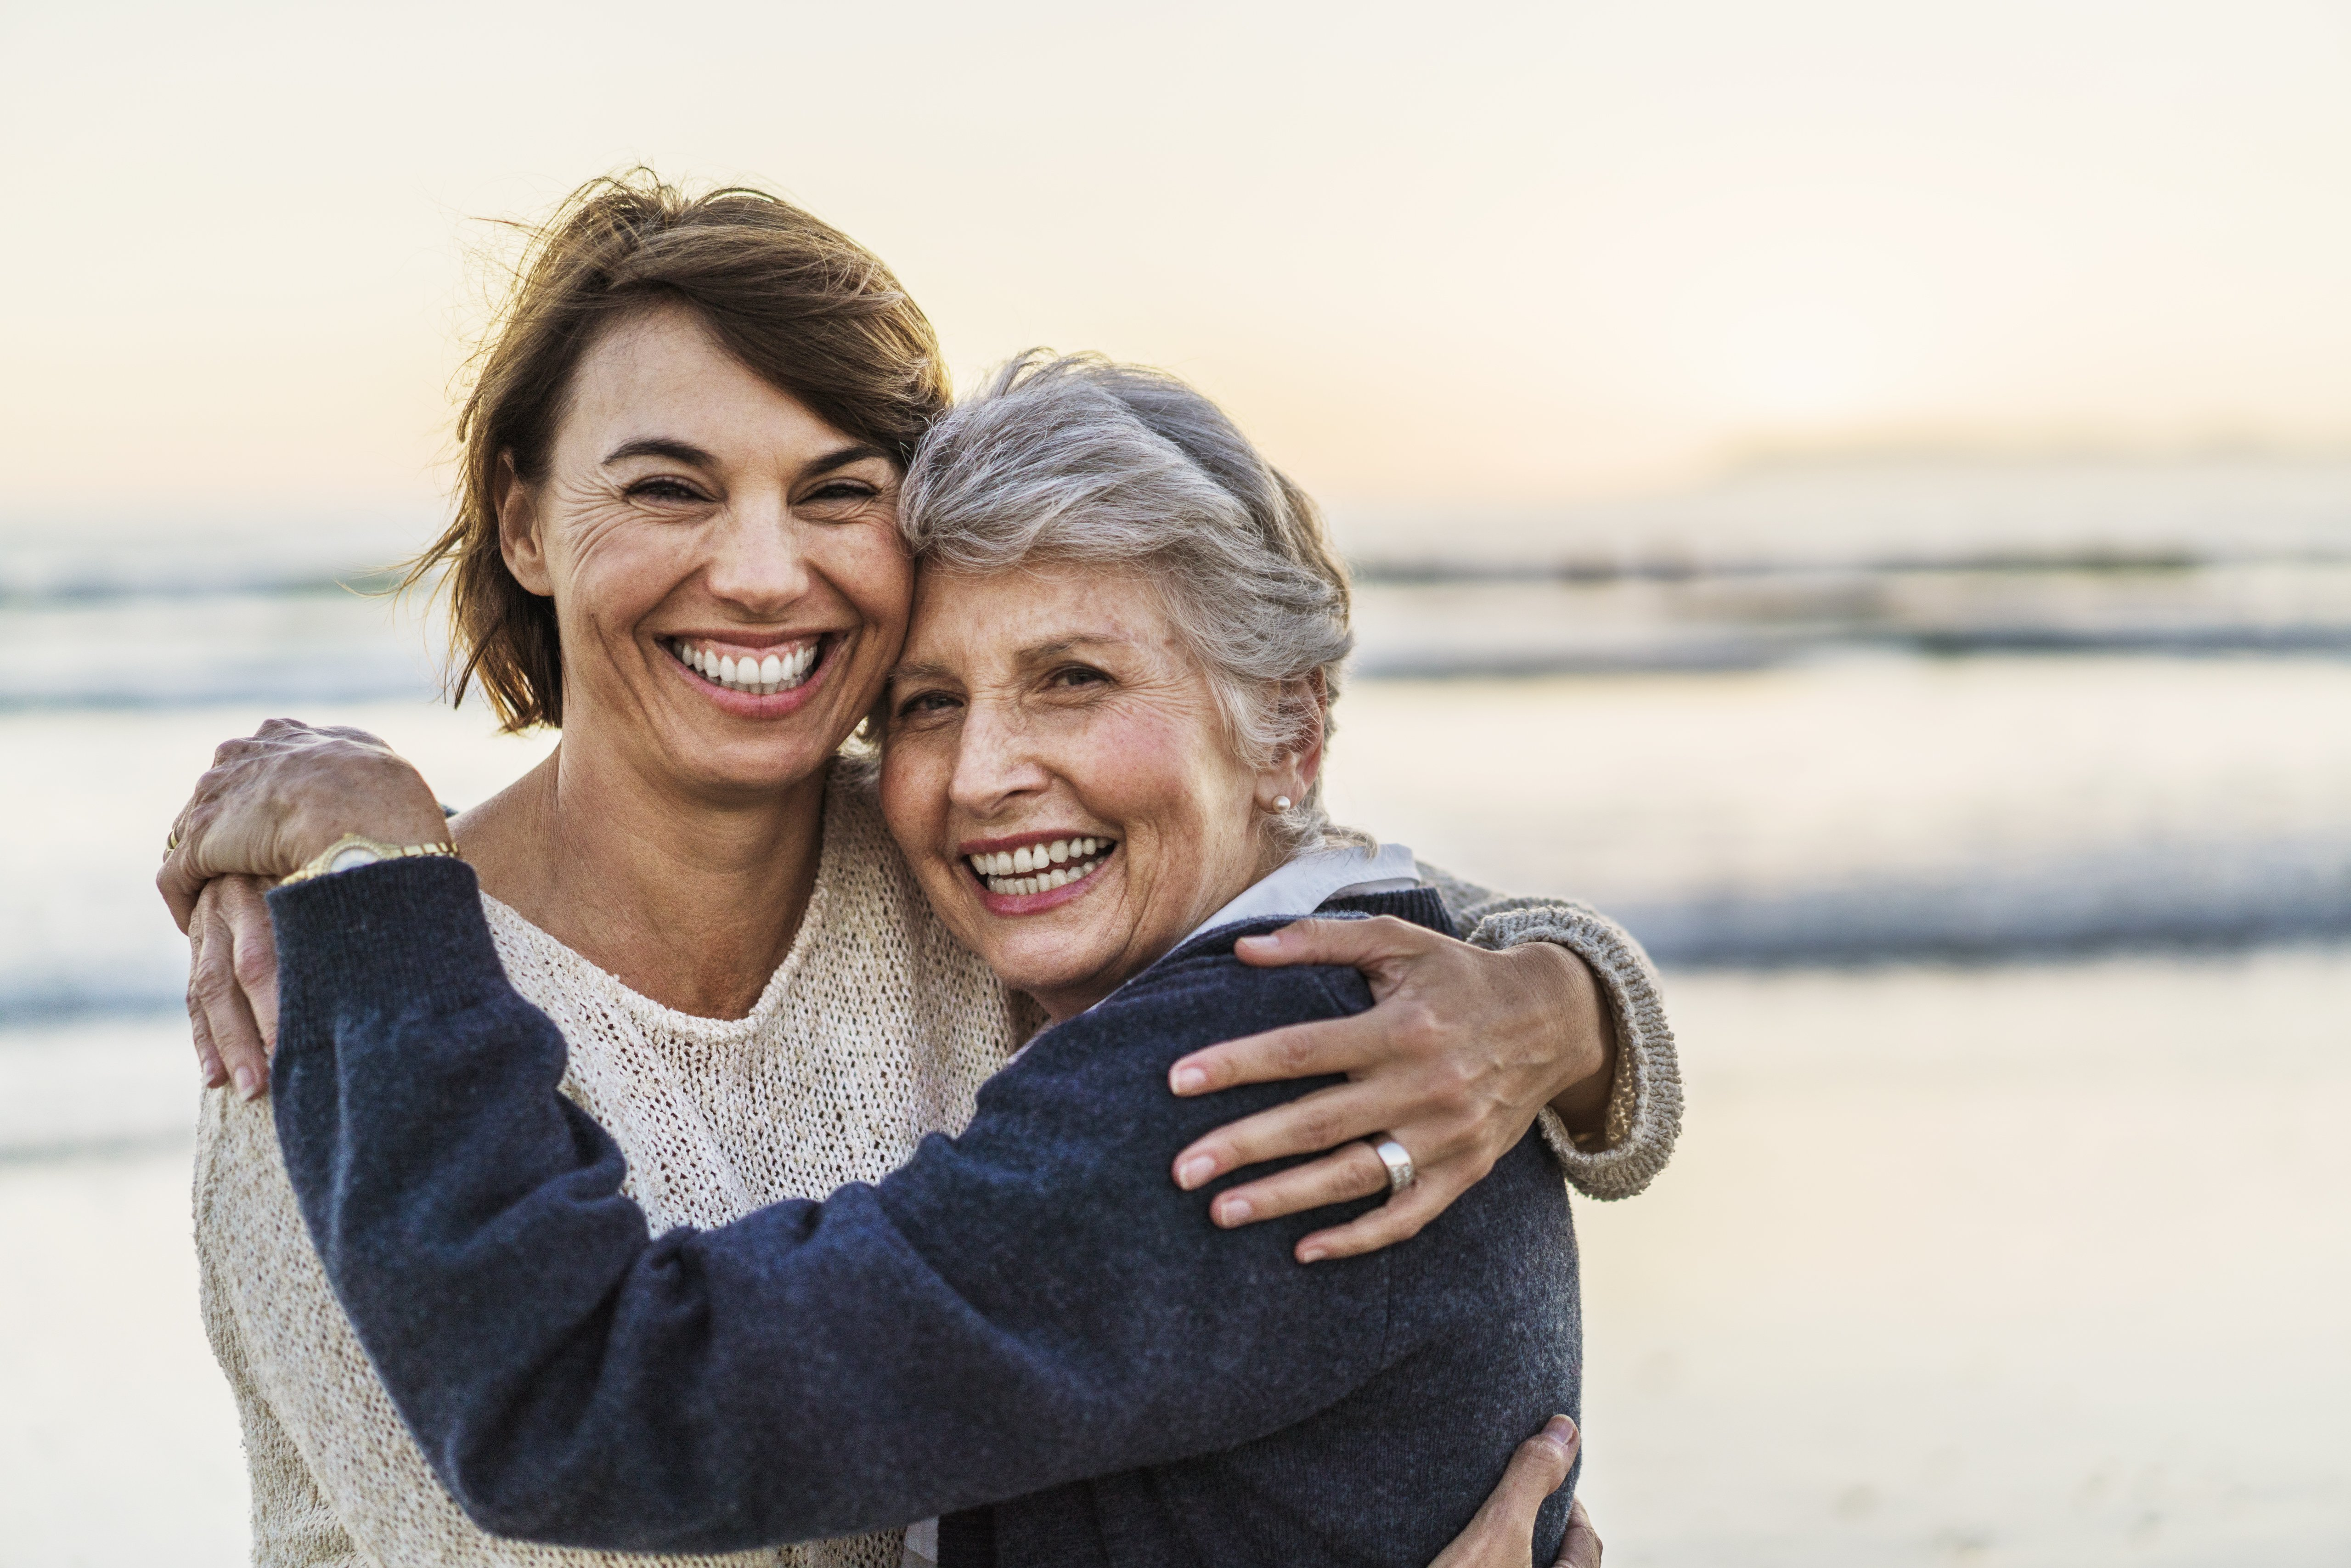 A photo of happy mother embracing female. Portrait of daughter with senior woman. They are at beach.|Photo: Getty Images